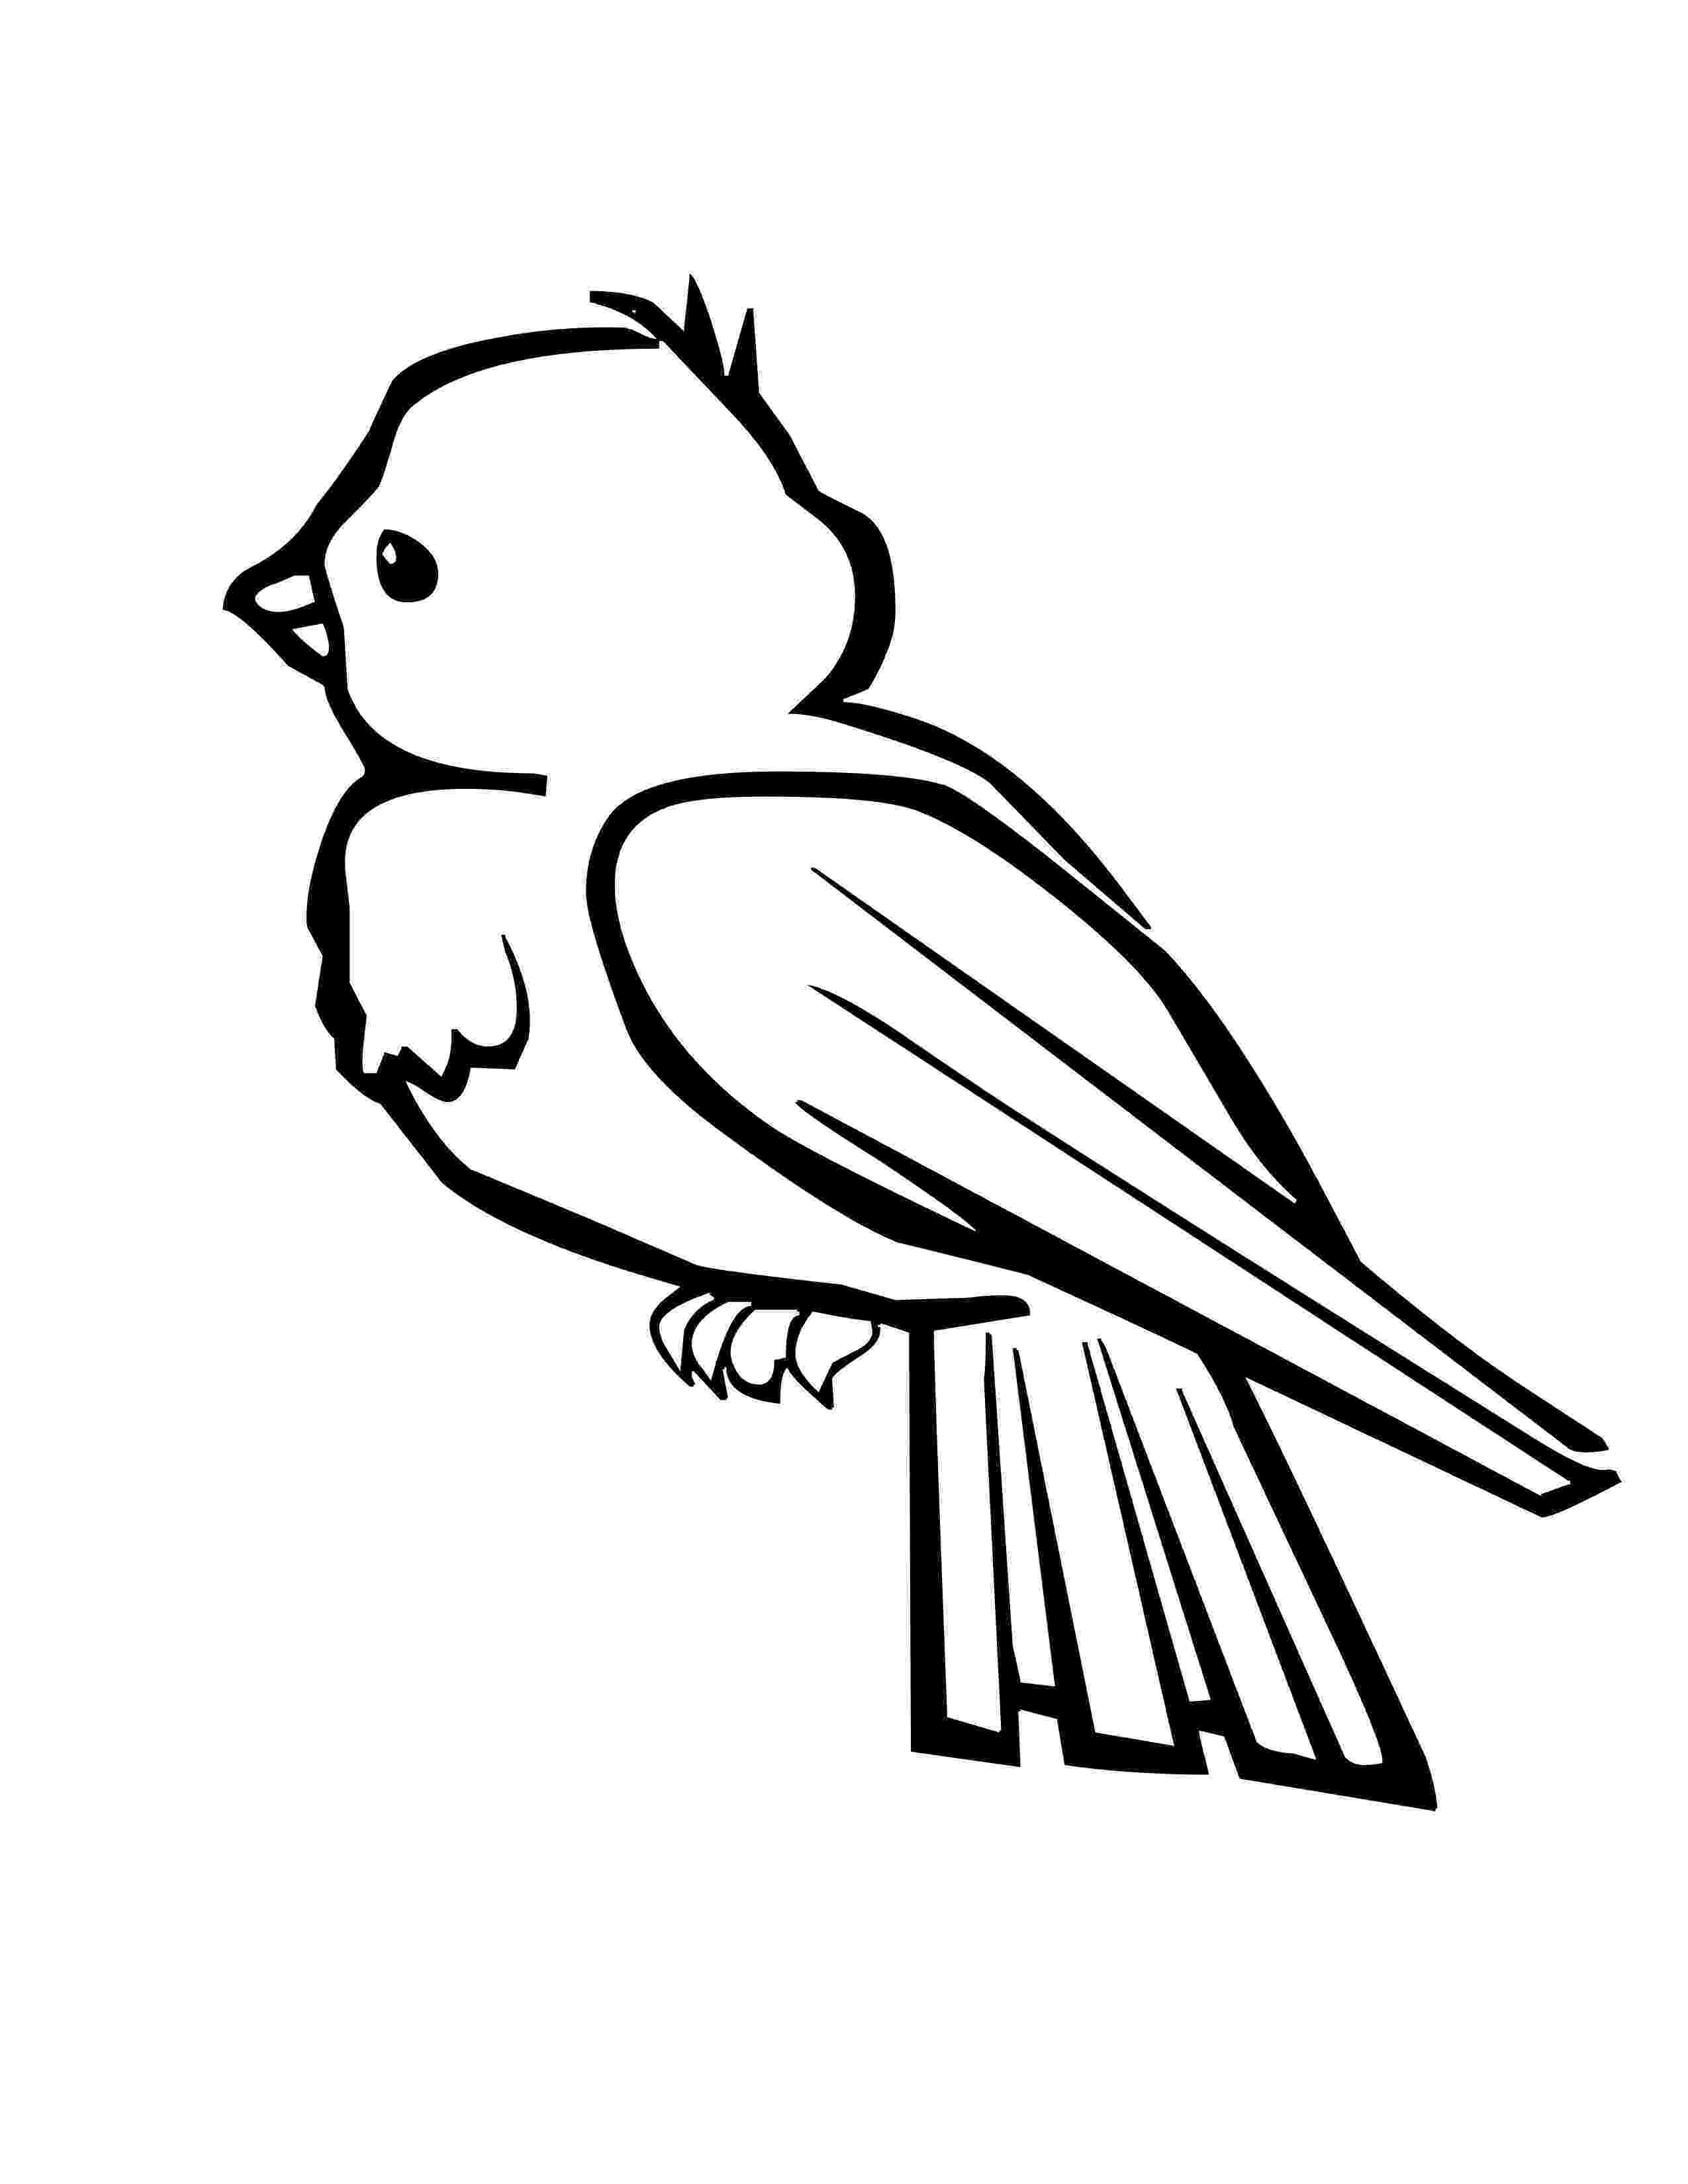 bird coloring pages to print free tweety bird coloring pages bird coloring print pages to